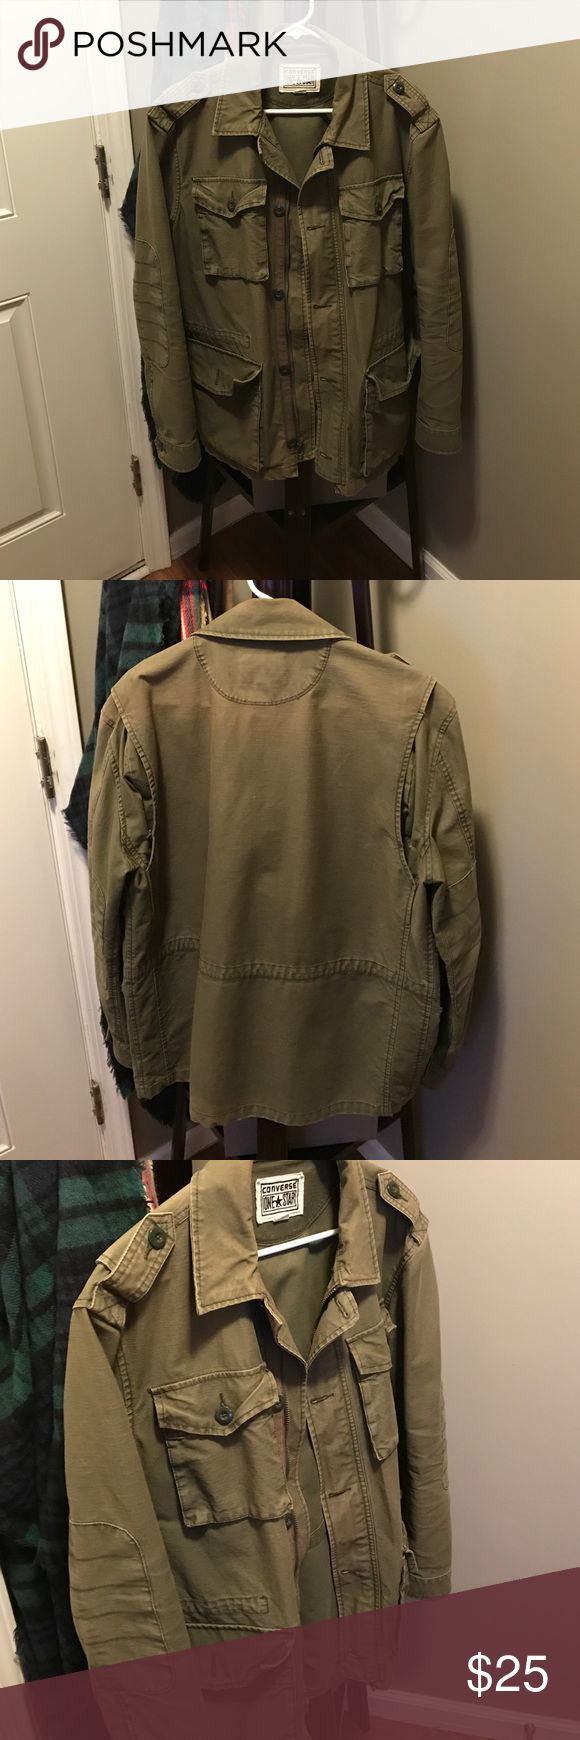 17 Best ideas about Army Fatigue Jacket on Pinterest ...